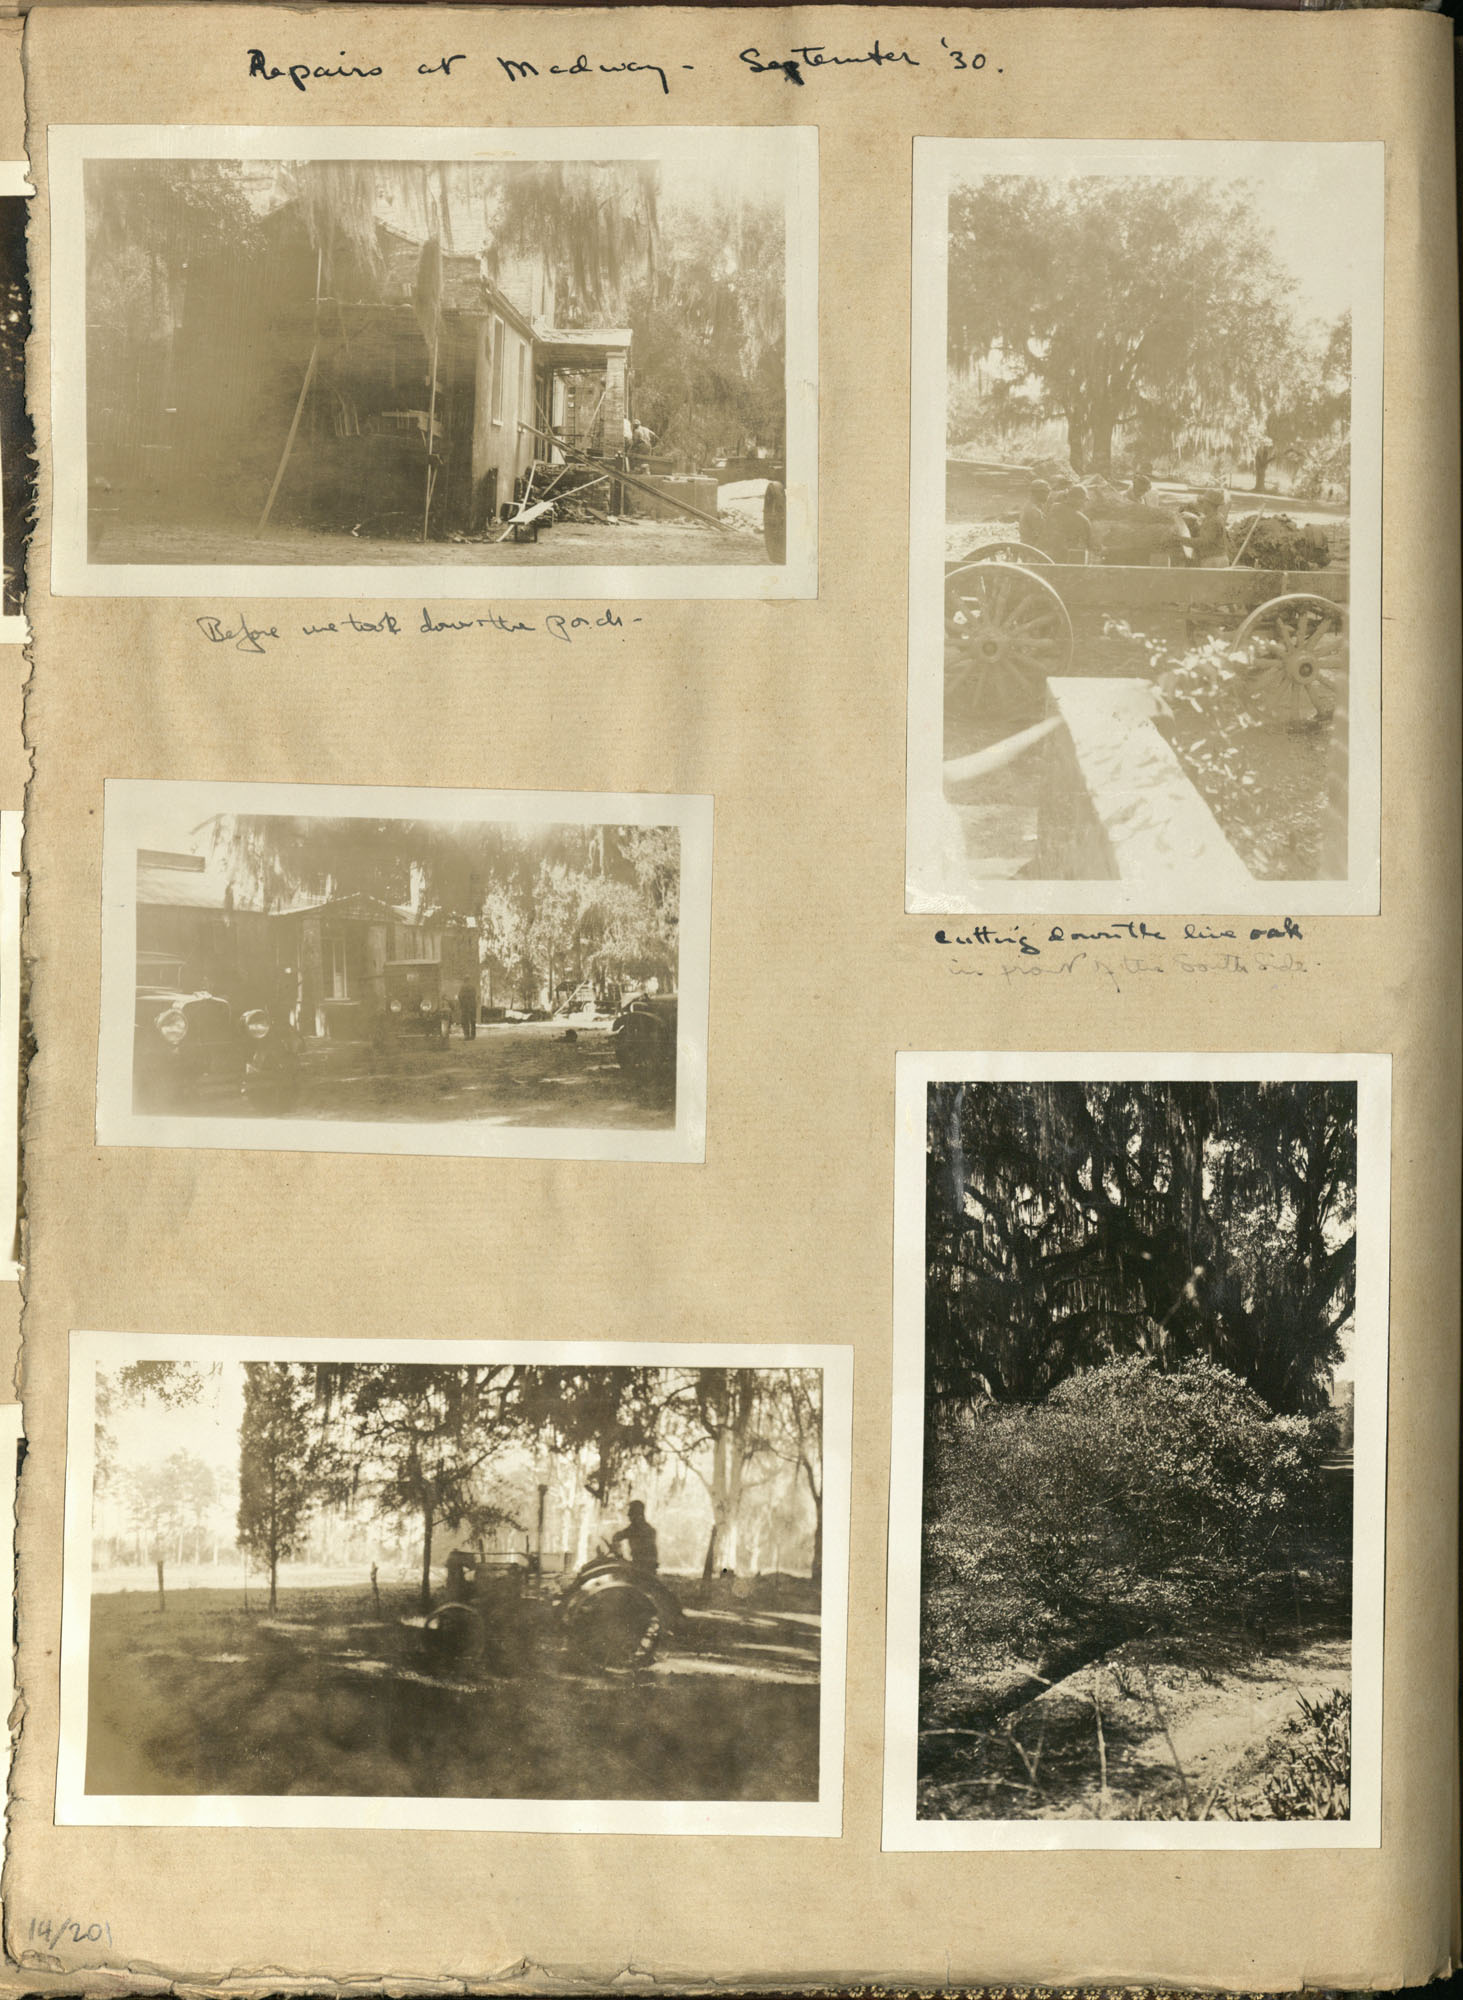 Early Medway and travels album, 1929-1937, page 14